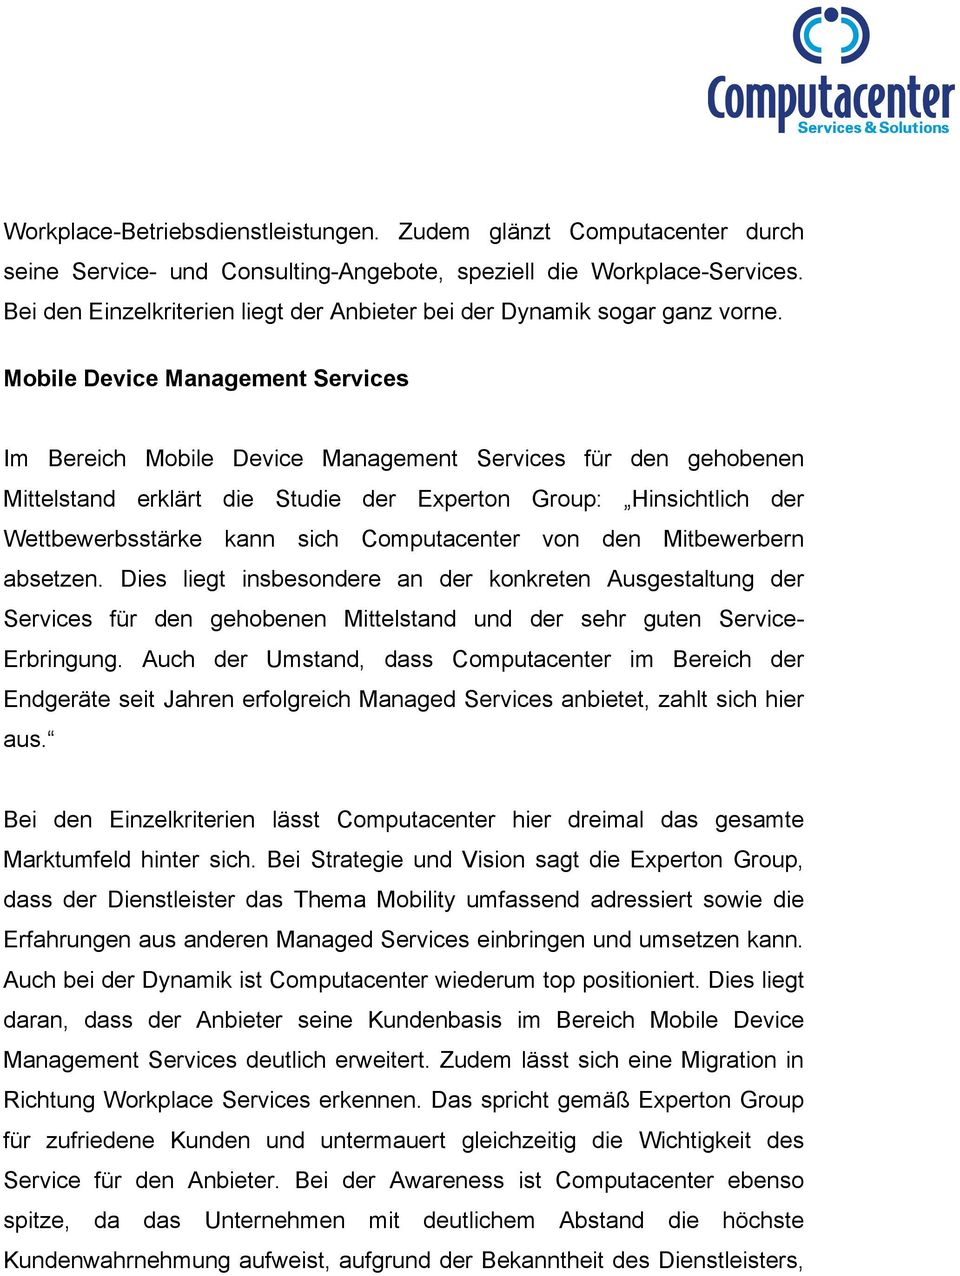 Mobile Device Management Services Im Bereich Mobile Device Management Services für den gehobenen Mittelstand erklärt die Studie der Experton Group: Hinsichtlich der Wettbewerbsstärke kann sich